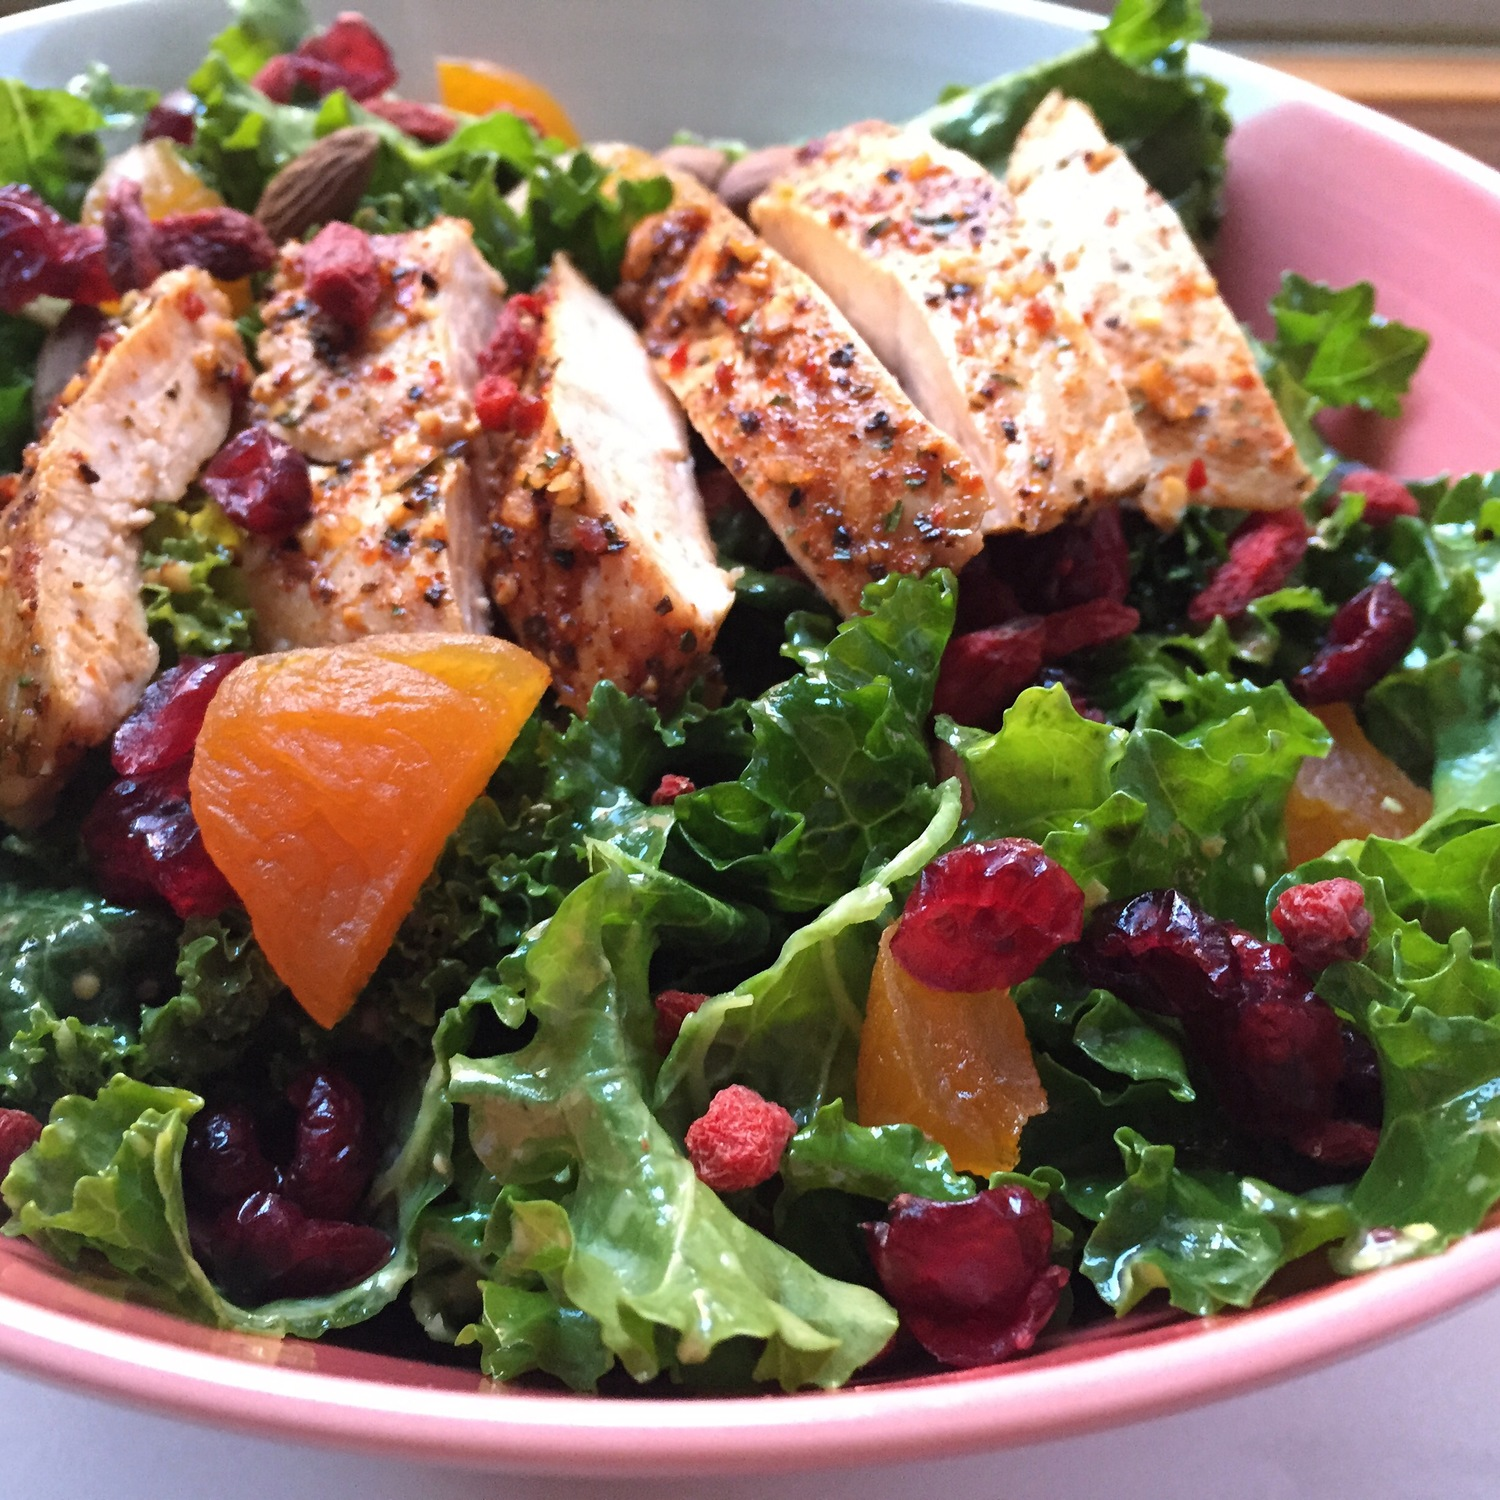 THE NEWBY KALE SALAD